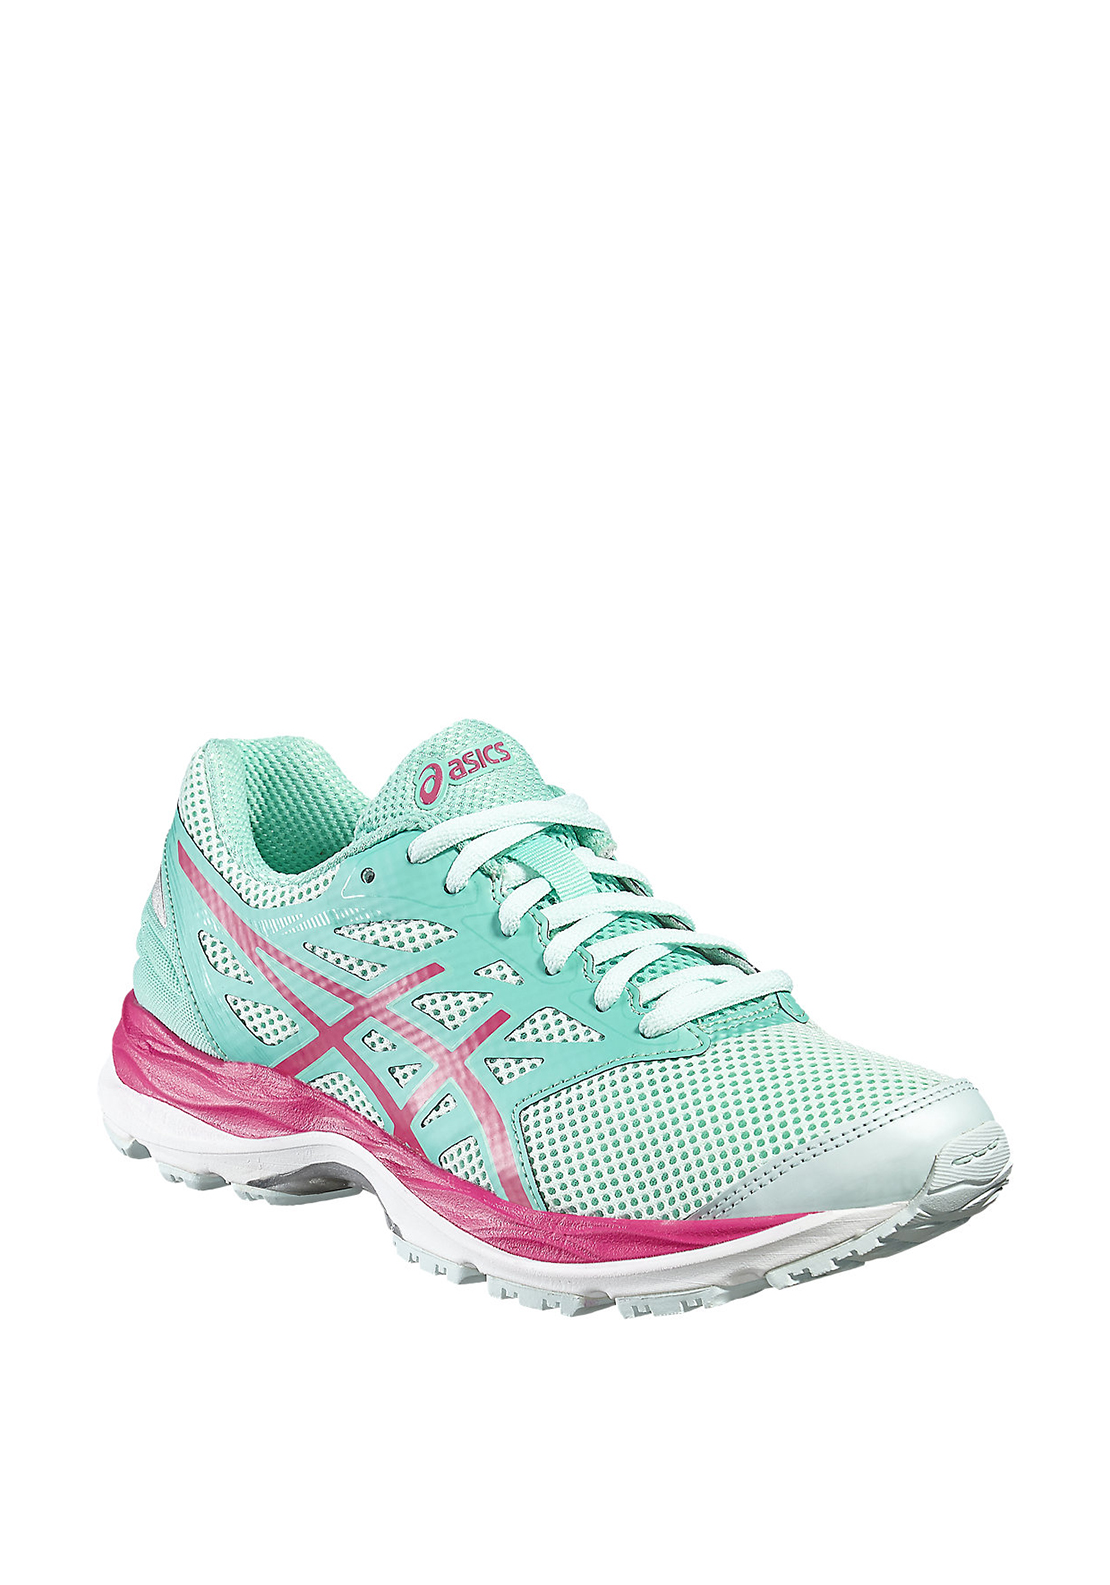 Asics Girls Gel Cumulus 18 Runners, Mint